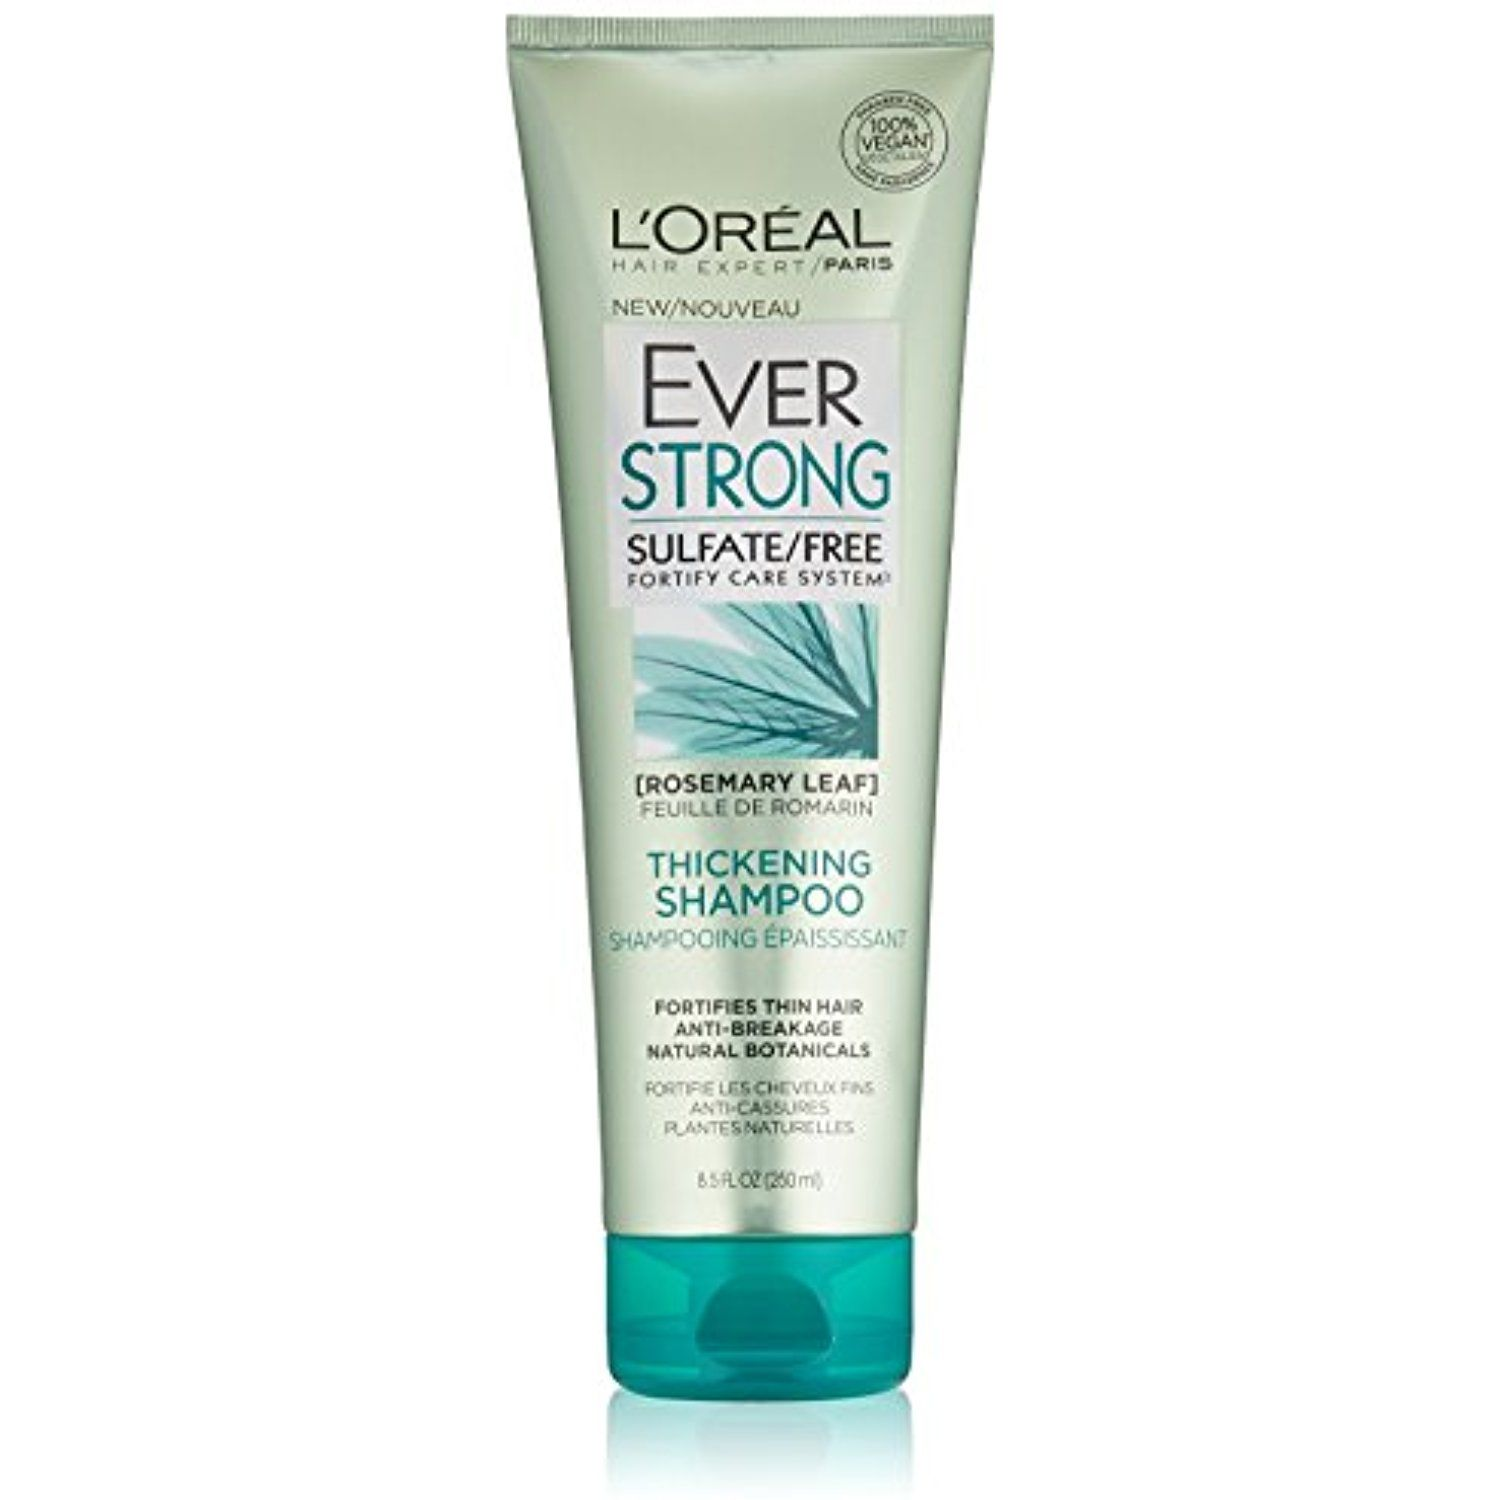 L Ora C Al Paris Everstrong Sulfate Free Thickening Shampoo 8 5 Fl Oz To View Further For This Item Visit T Thickening Shampoo Shampoo Sulfate Free Shampoo